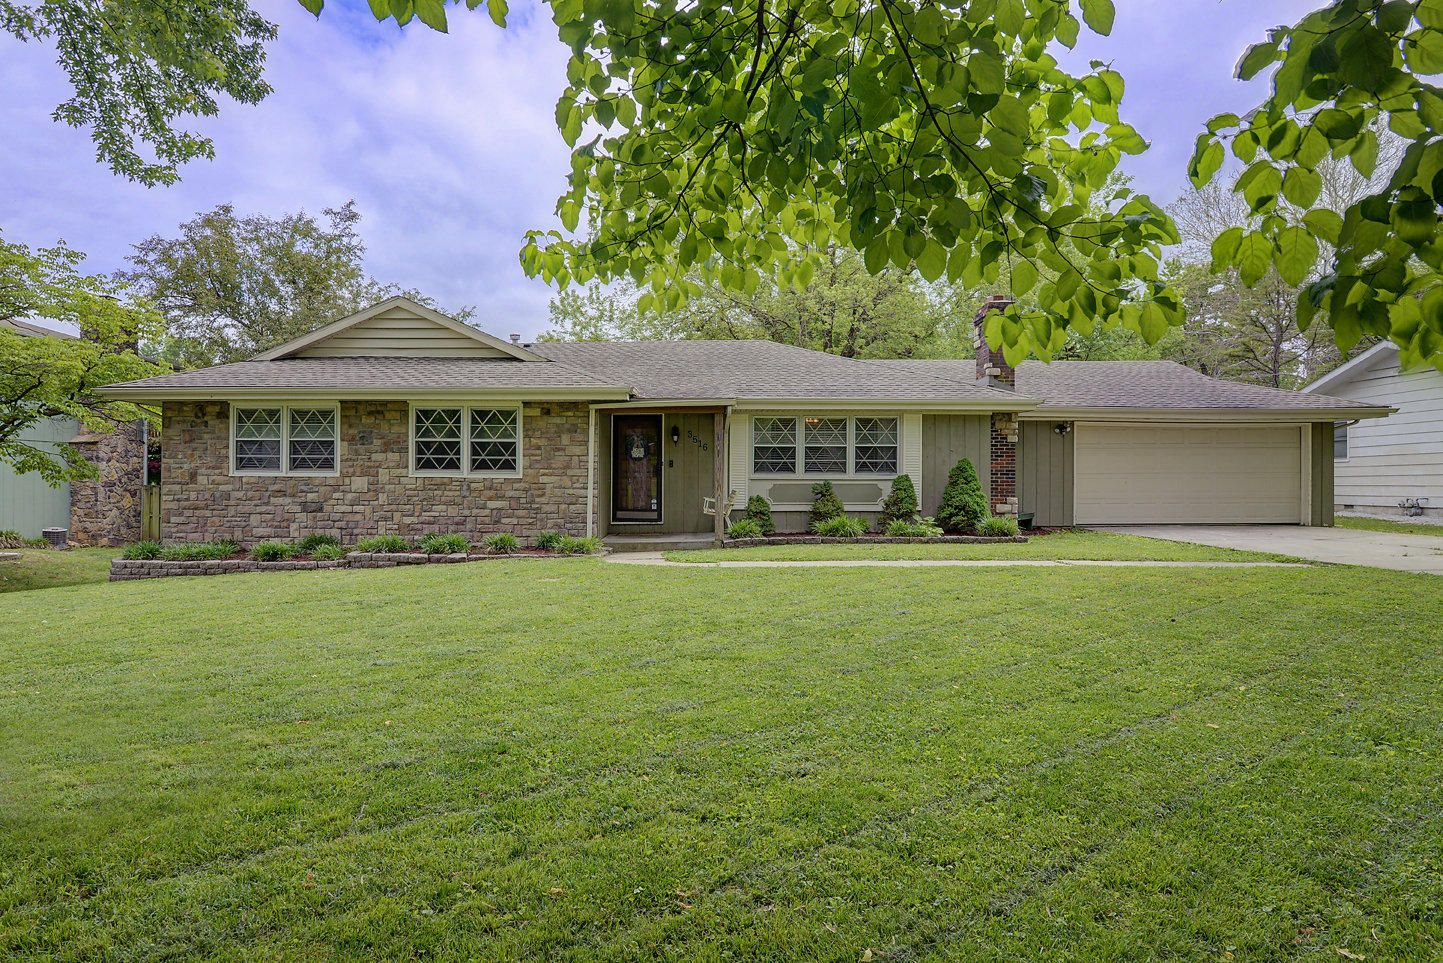 💥💥JUST LISTED💥💥 4 Beds 2 Baths 1,881 sq. ft. 3516 East Eastwood Boulevard, Springfield, MO 65809 |  The Sign You Want. The Agent You Need. 🖱SELECT👨‍👨‍👦‍👦SHARE📱CALL💬TEXT #remaxhob #homeforsale #justlisted